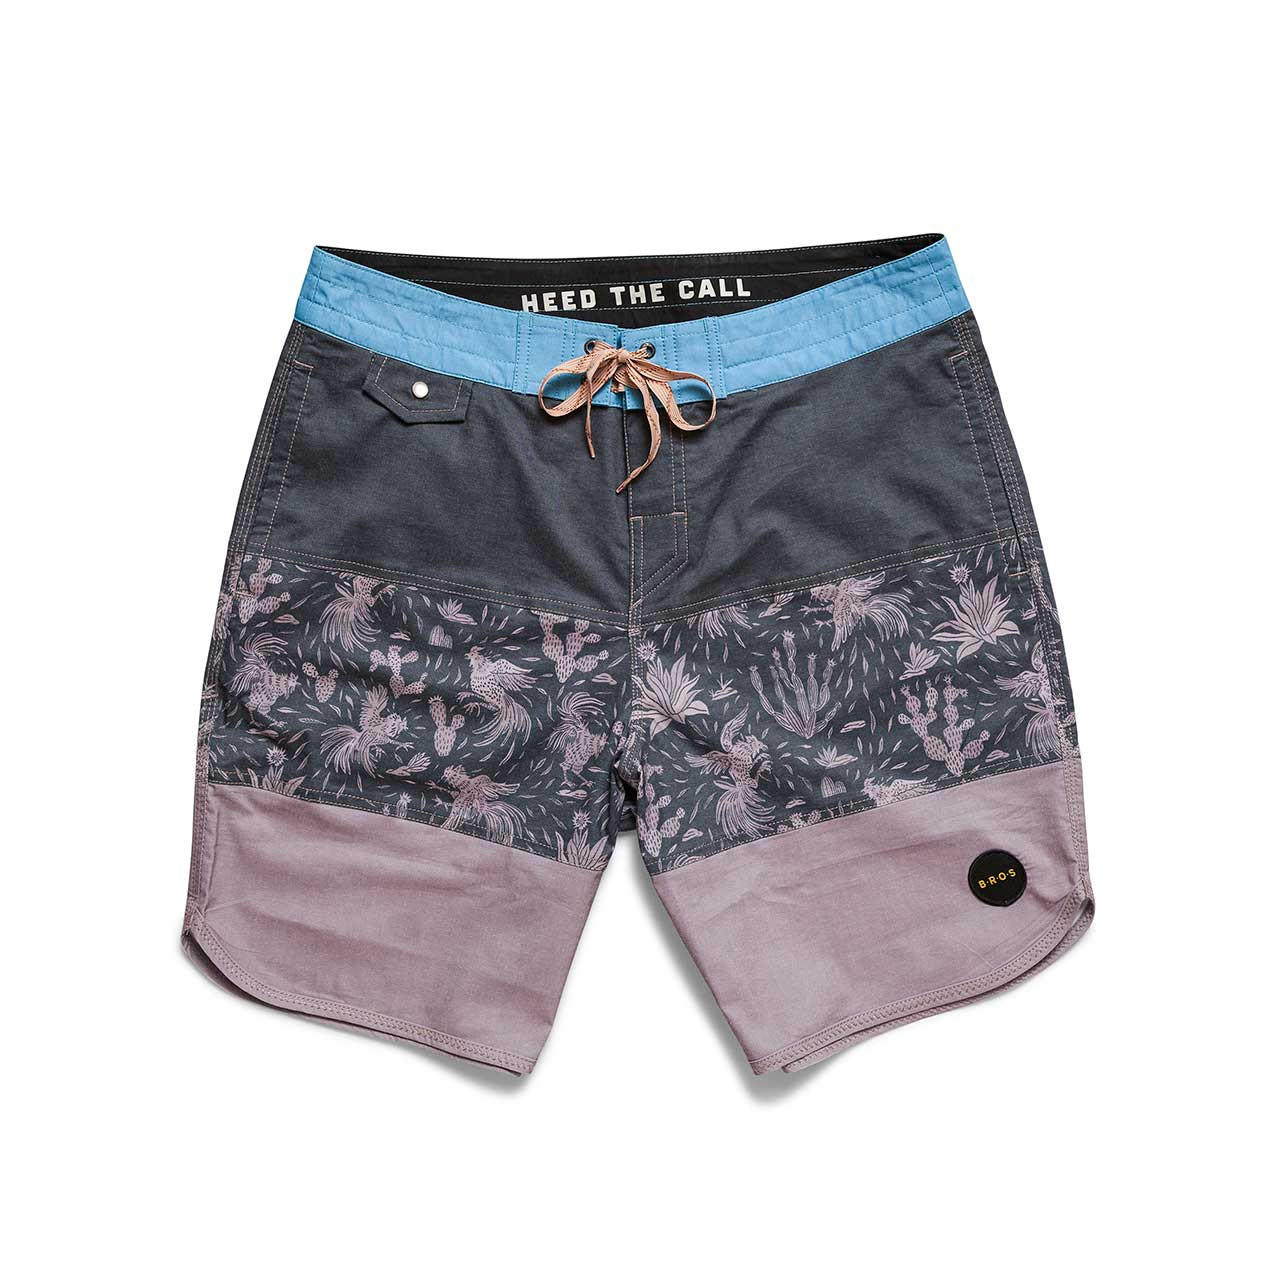 16985a9387 ... Howler Brothers Stretch Vaquero Boardshorts · Stretch Vaquero  Boardshorts - Blue Gallo Stripe